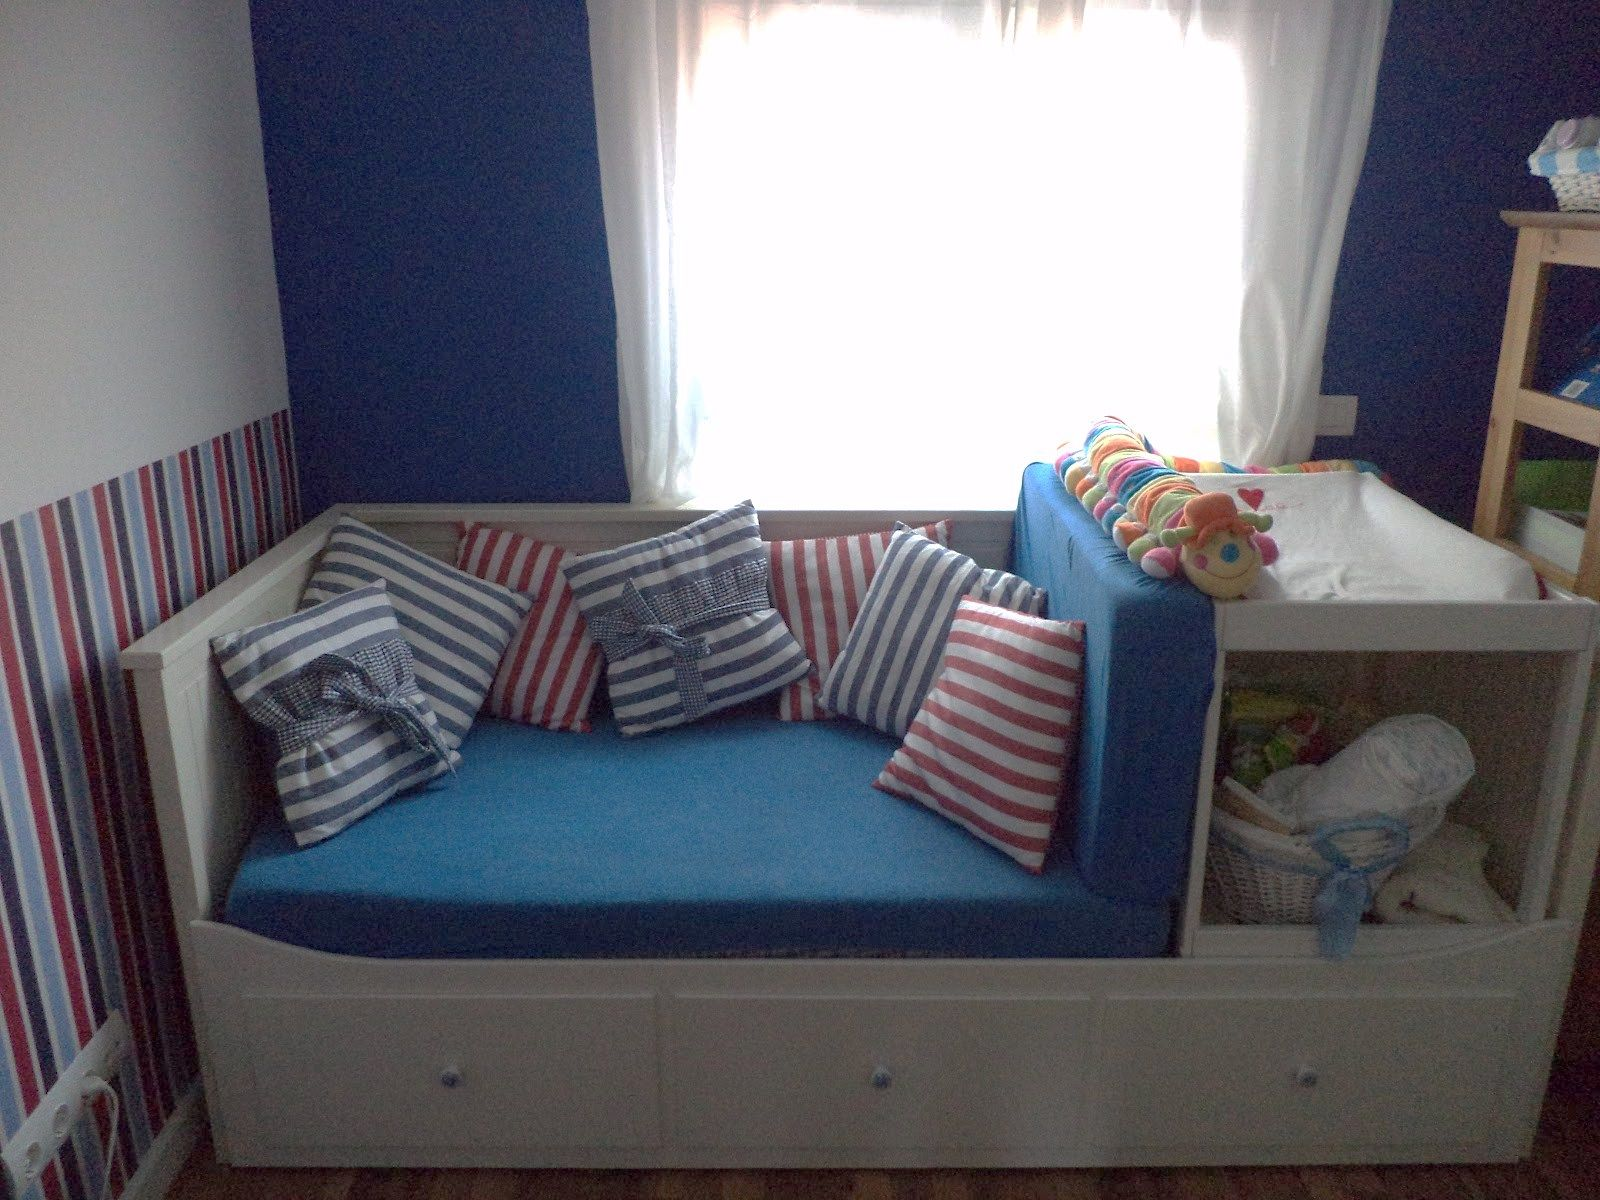 Toddler Bed Changing Table Out Of Ikea Furniture Ikea Guest Bed Ikea Bed Ikea Bed Hack